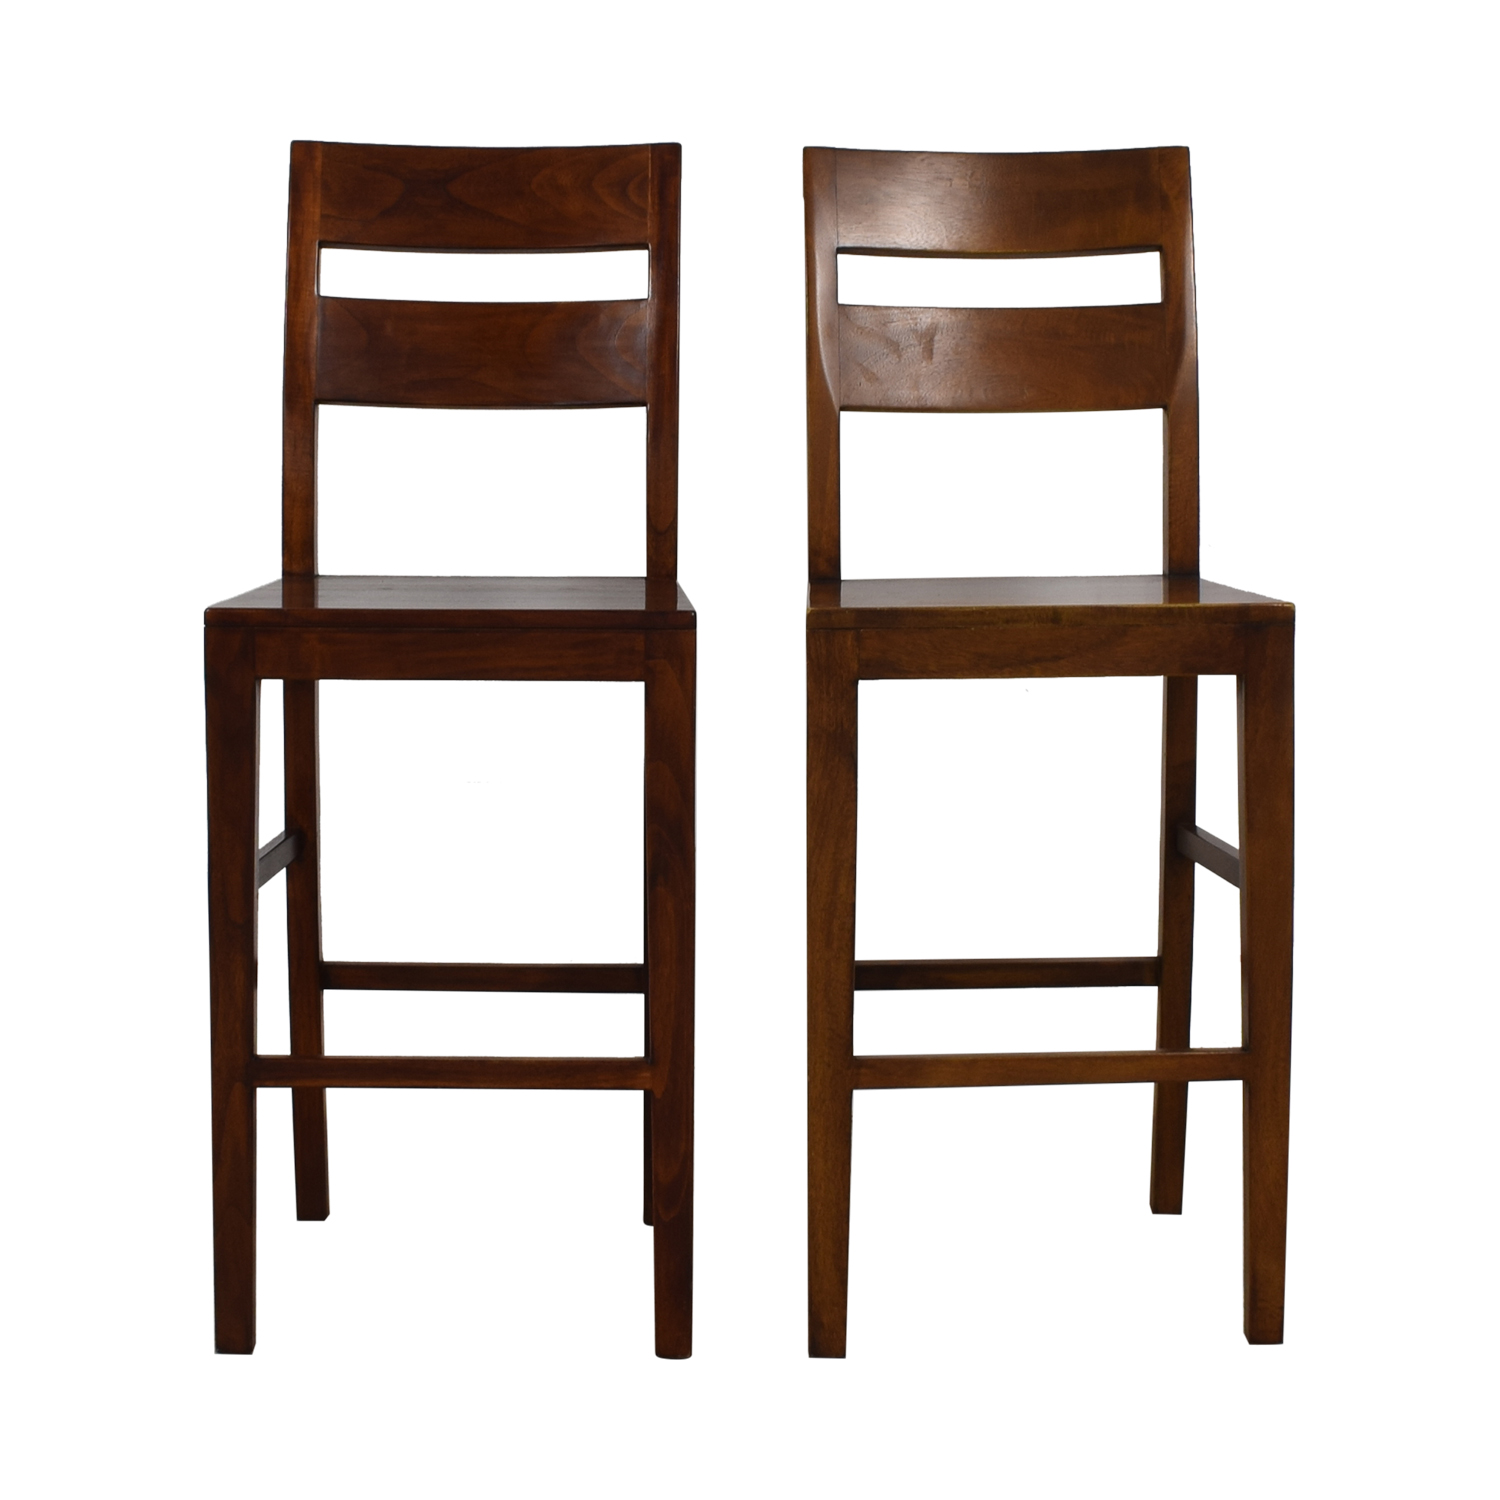 Breakfast Chairs 66 Off Crate Barrel Crate Barrel Counter Breakfast Bar Stools Chairs